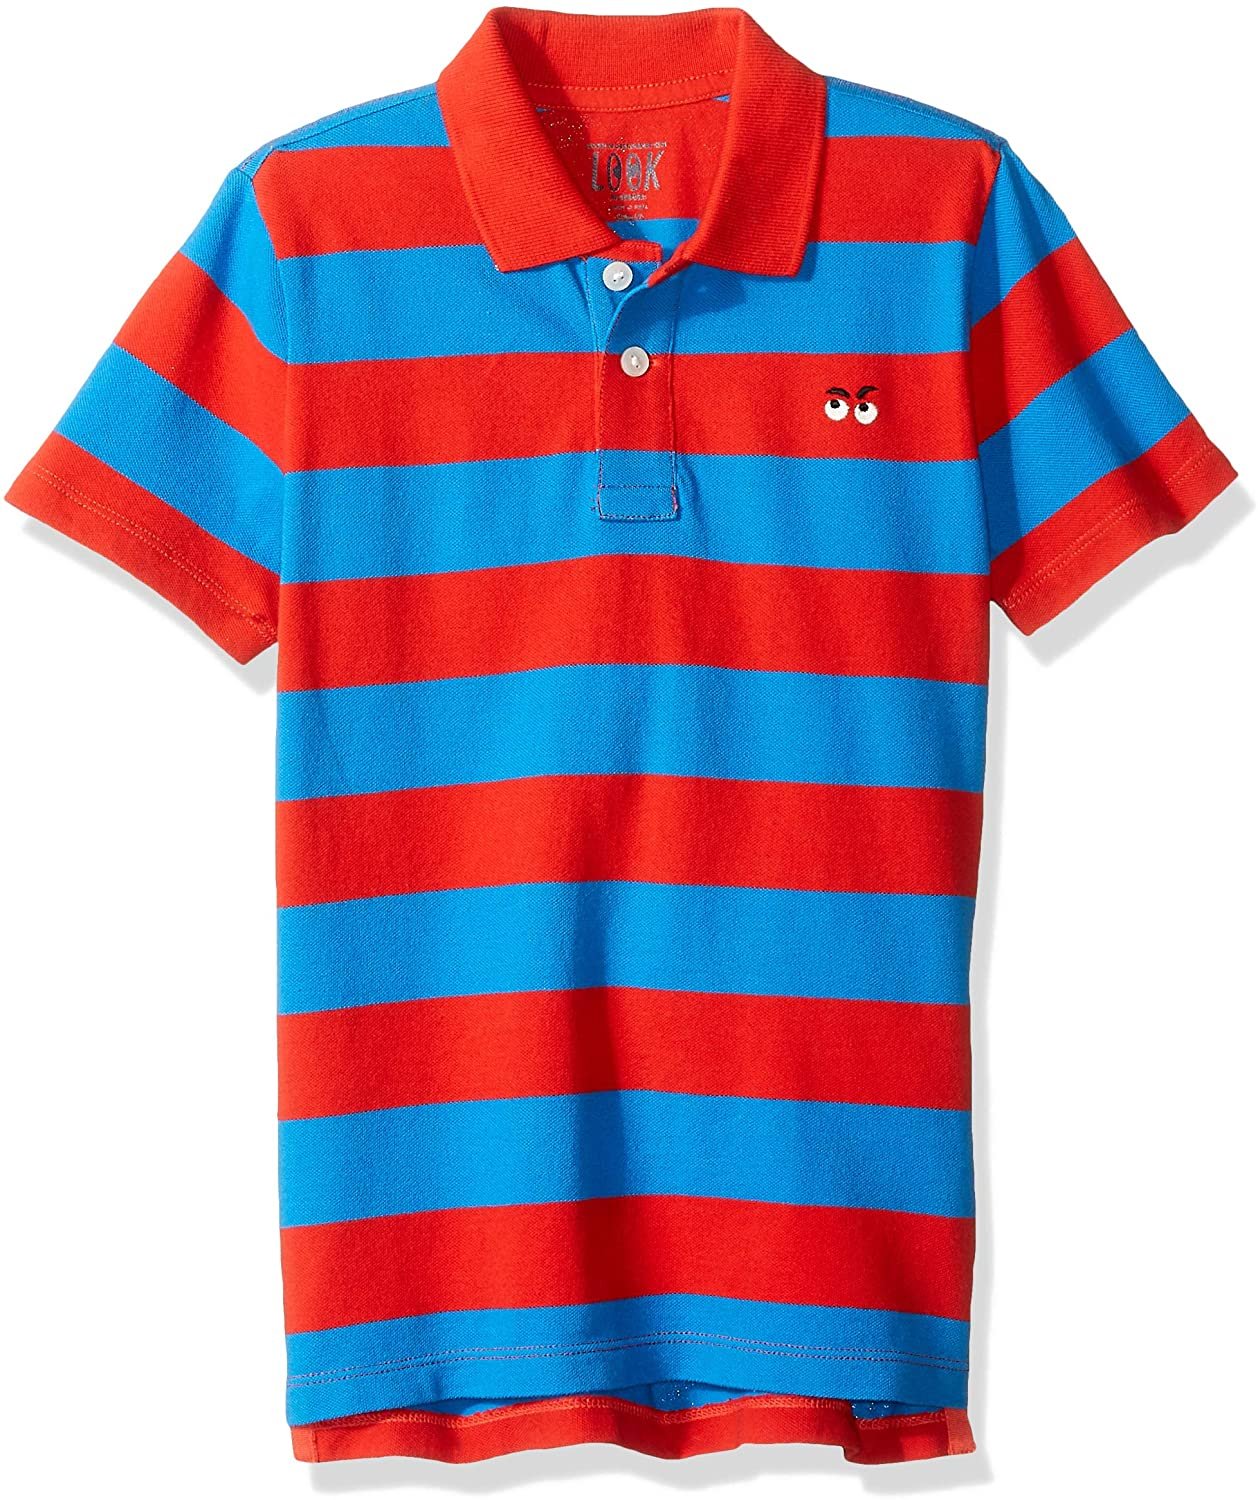 DHgate/ J. Crew Brand- LOOK by crewcuts Boy's Short Sleeve Polo